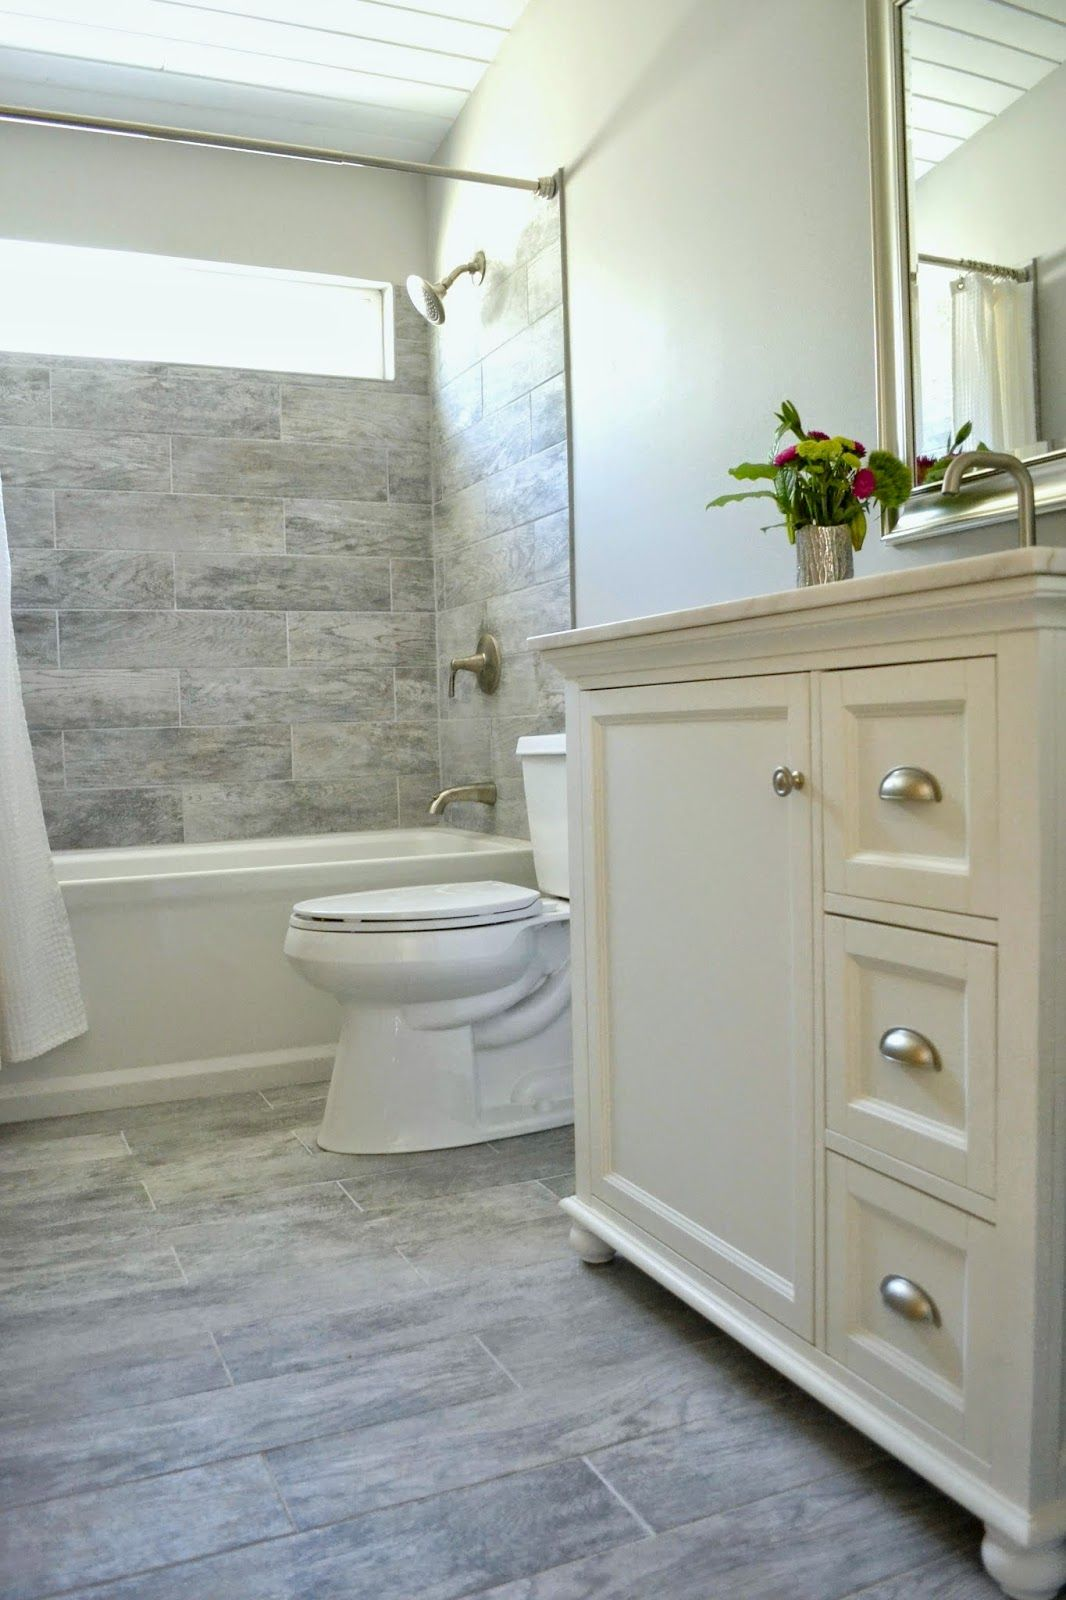 Mommy Testers How I Renovated Our Bathroom On A Budget Bathrooms Remodel Trendy Bathroom Budget Bathroom